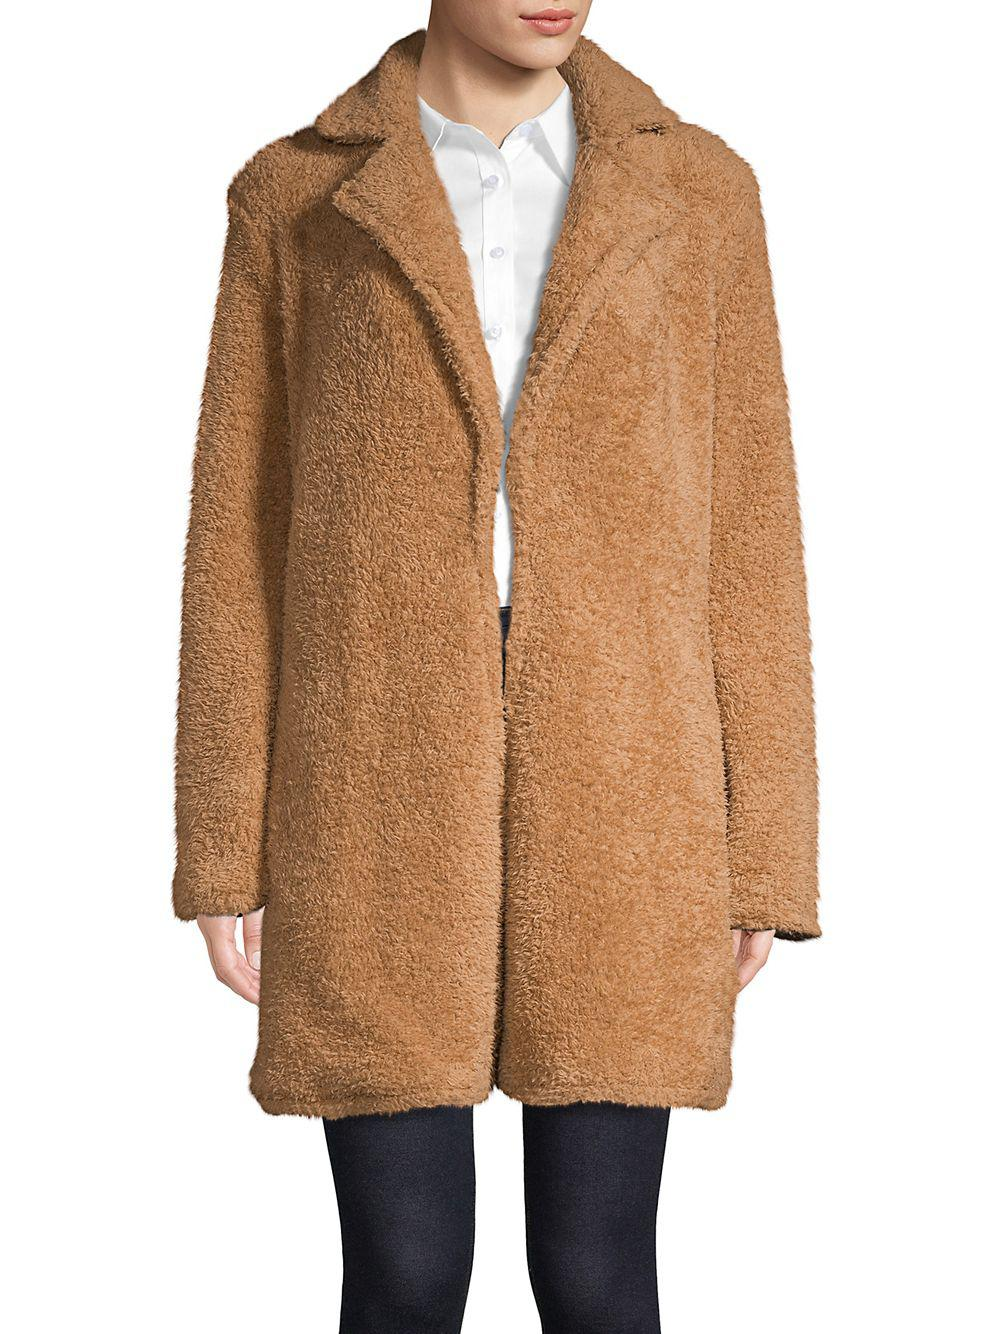 50e45df03a1 Lyst - The Fifth Label Paige Tailored Faux Fur Jacket in Brown